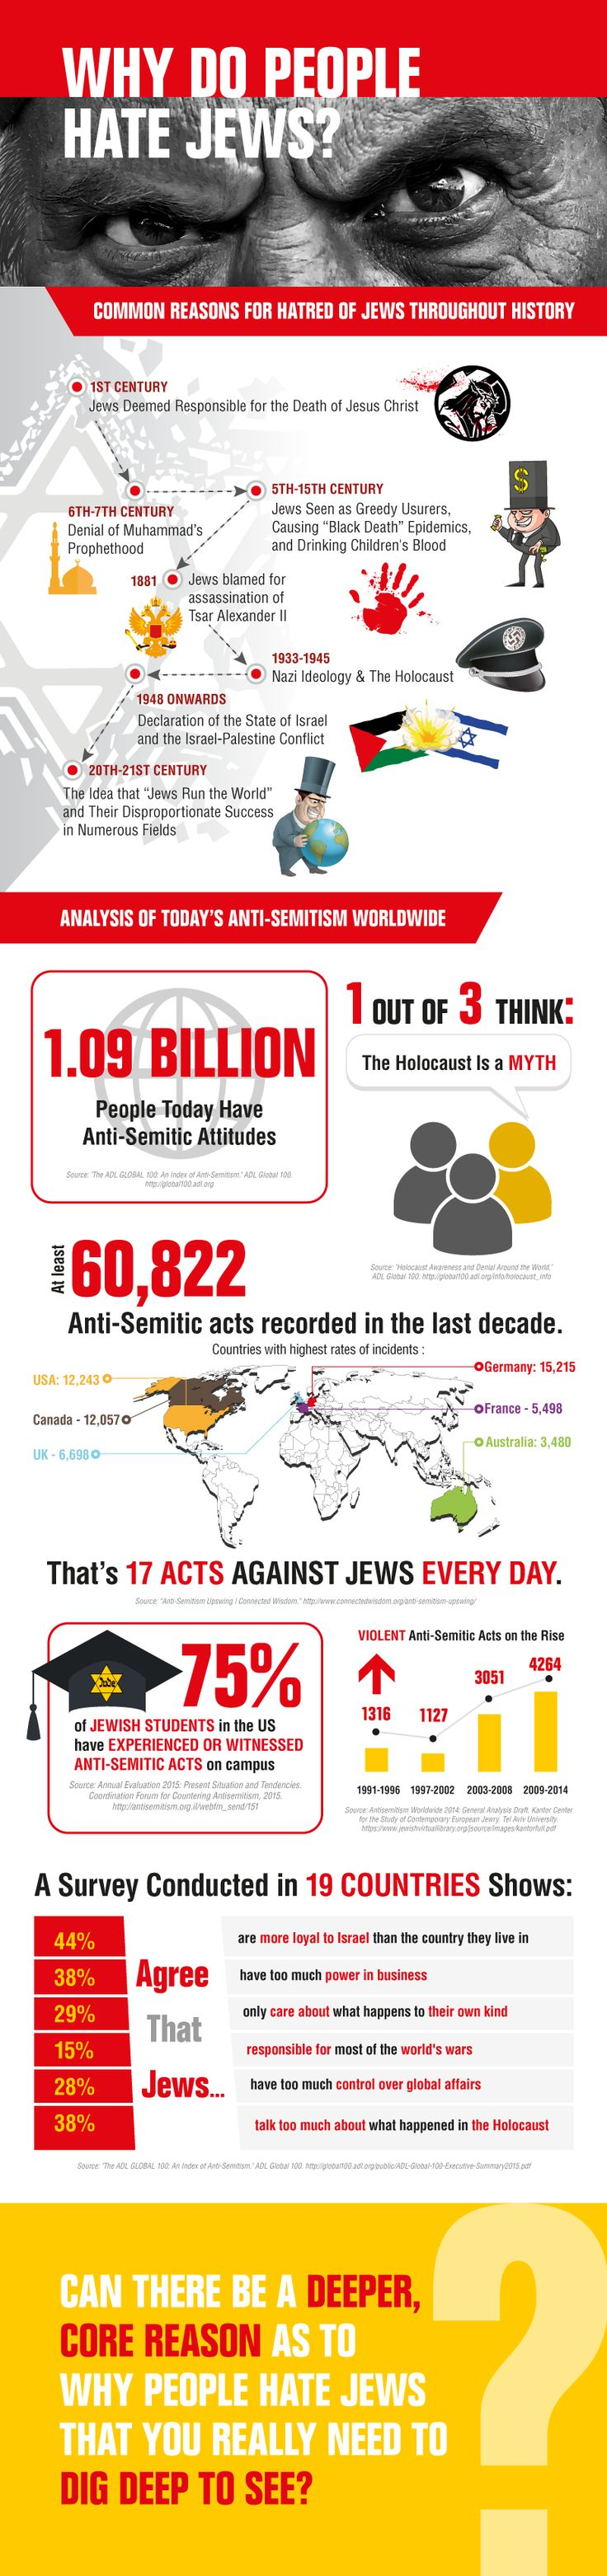 Kabbalah.info released an infographic containing commons reasons why people have hated Jews throughout history, as well as a statistical analysis of anti-Semitism in the world today. The infographic gives as neatly packaged historical overview of reasons people have hated Jews throughout history. It also clearly shows how anti-Semitic incidents are on the rise, the …